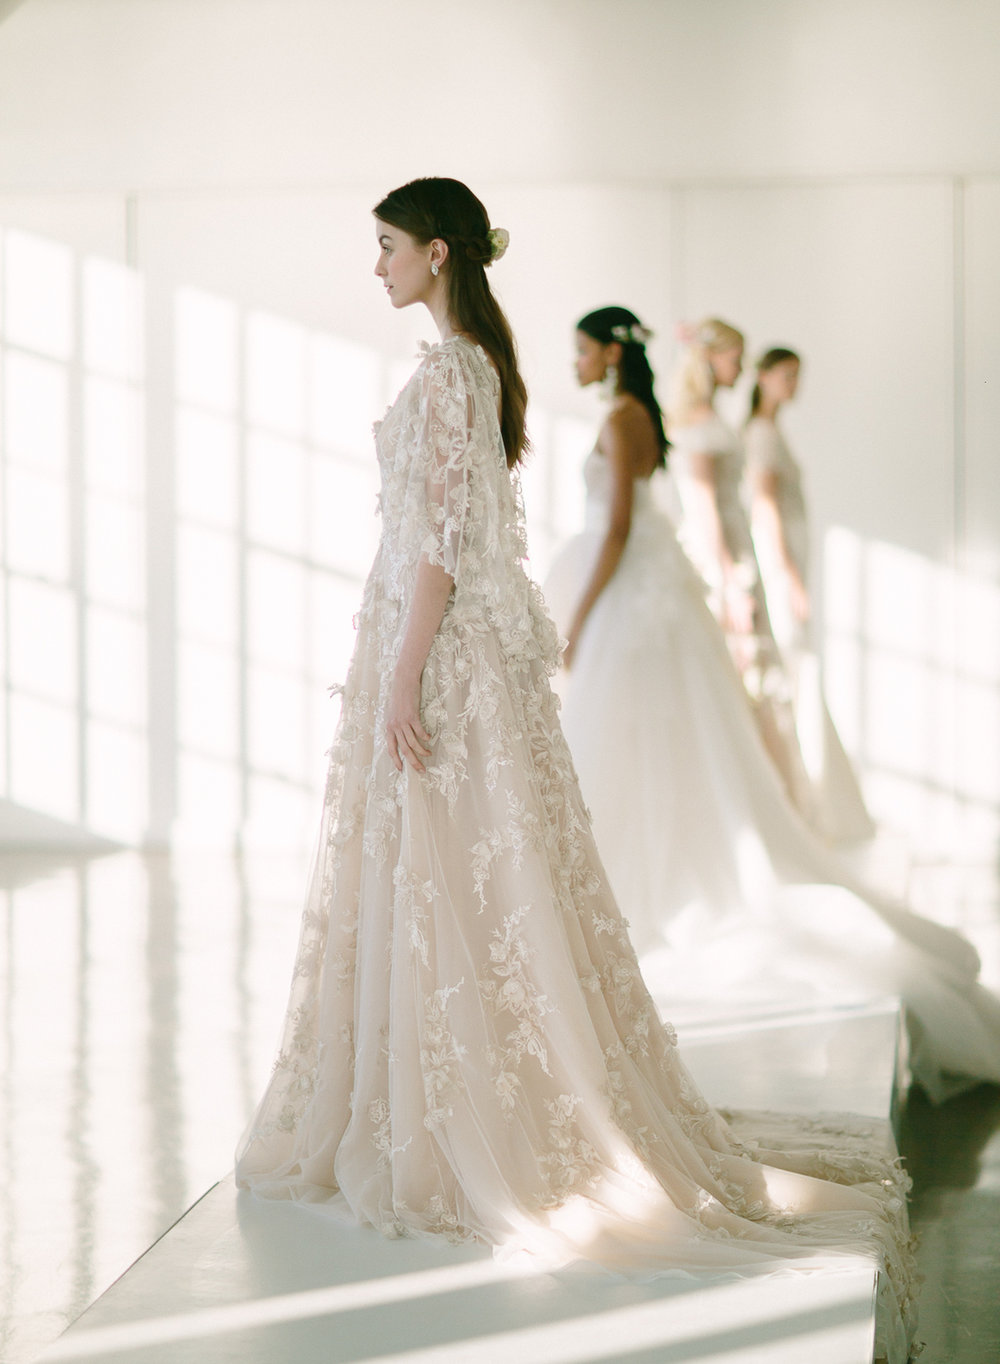 marchesa_bridal_017_greg_finck-021_50556.jpg